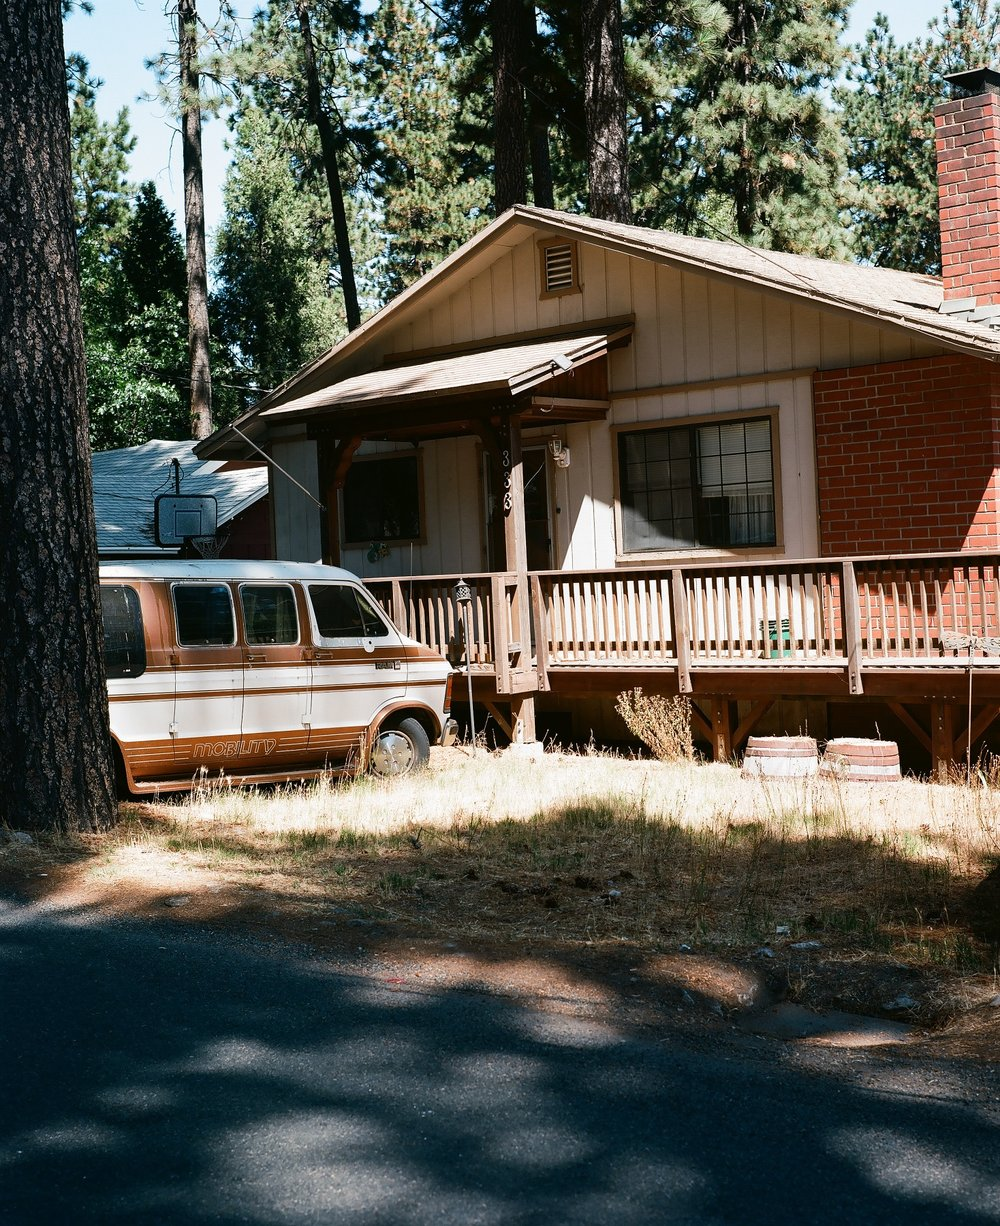 Crestline, California_Mamiya Super 23, 3.5f=100m_Kyle Everett Smith_7.jpg